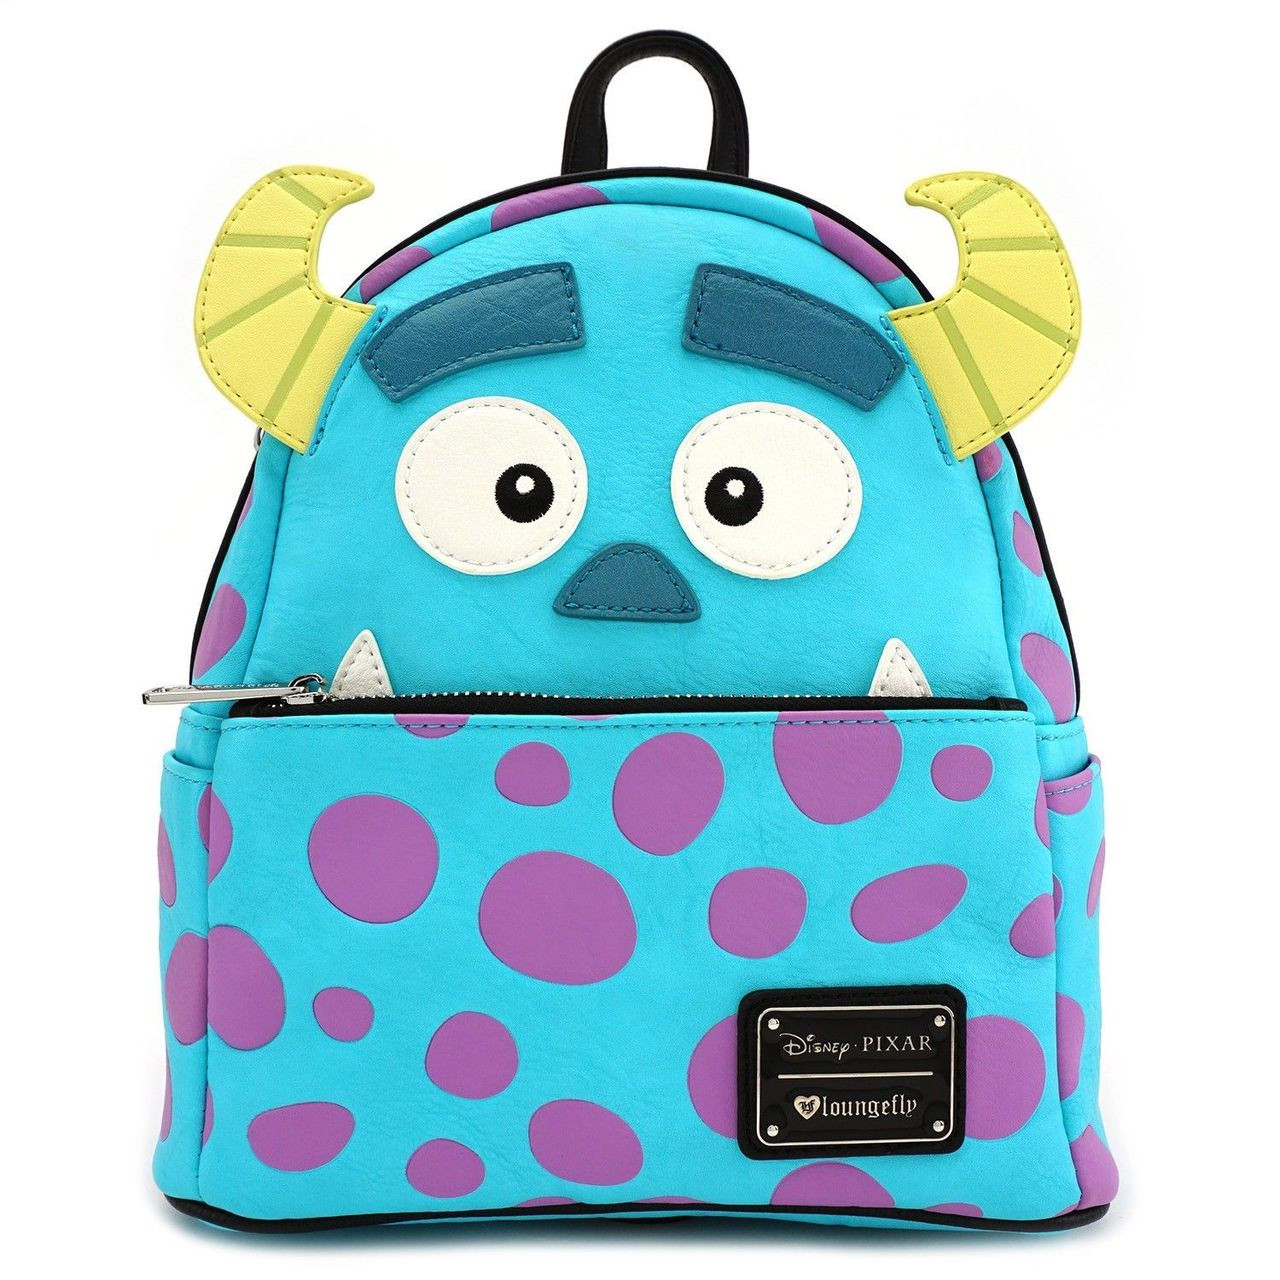 f54fec0f84d3 Loungefly Disney Monsters Inc Sully Face Faux Leather Mini Backpack WDBK0407